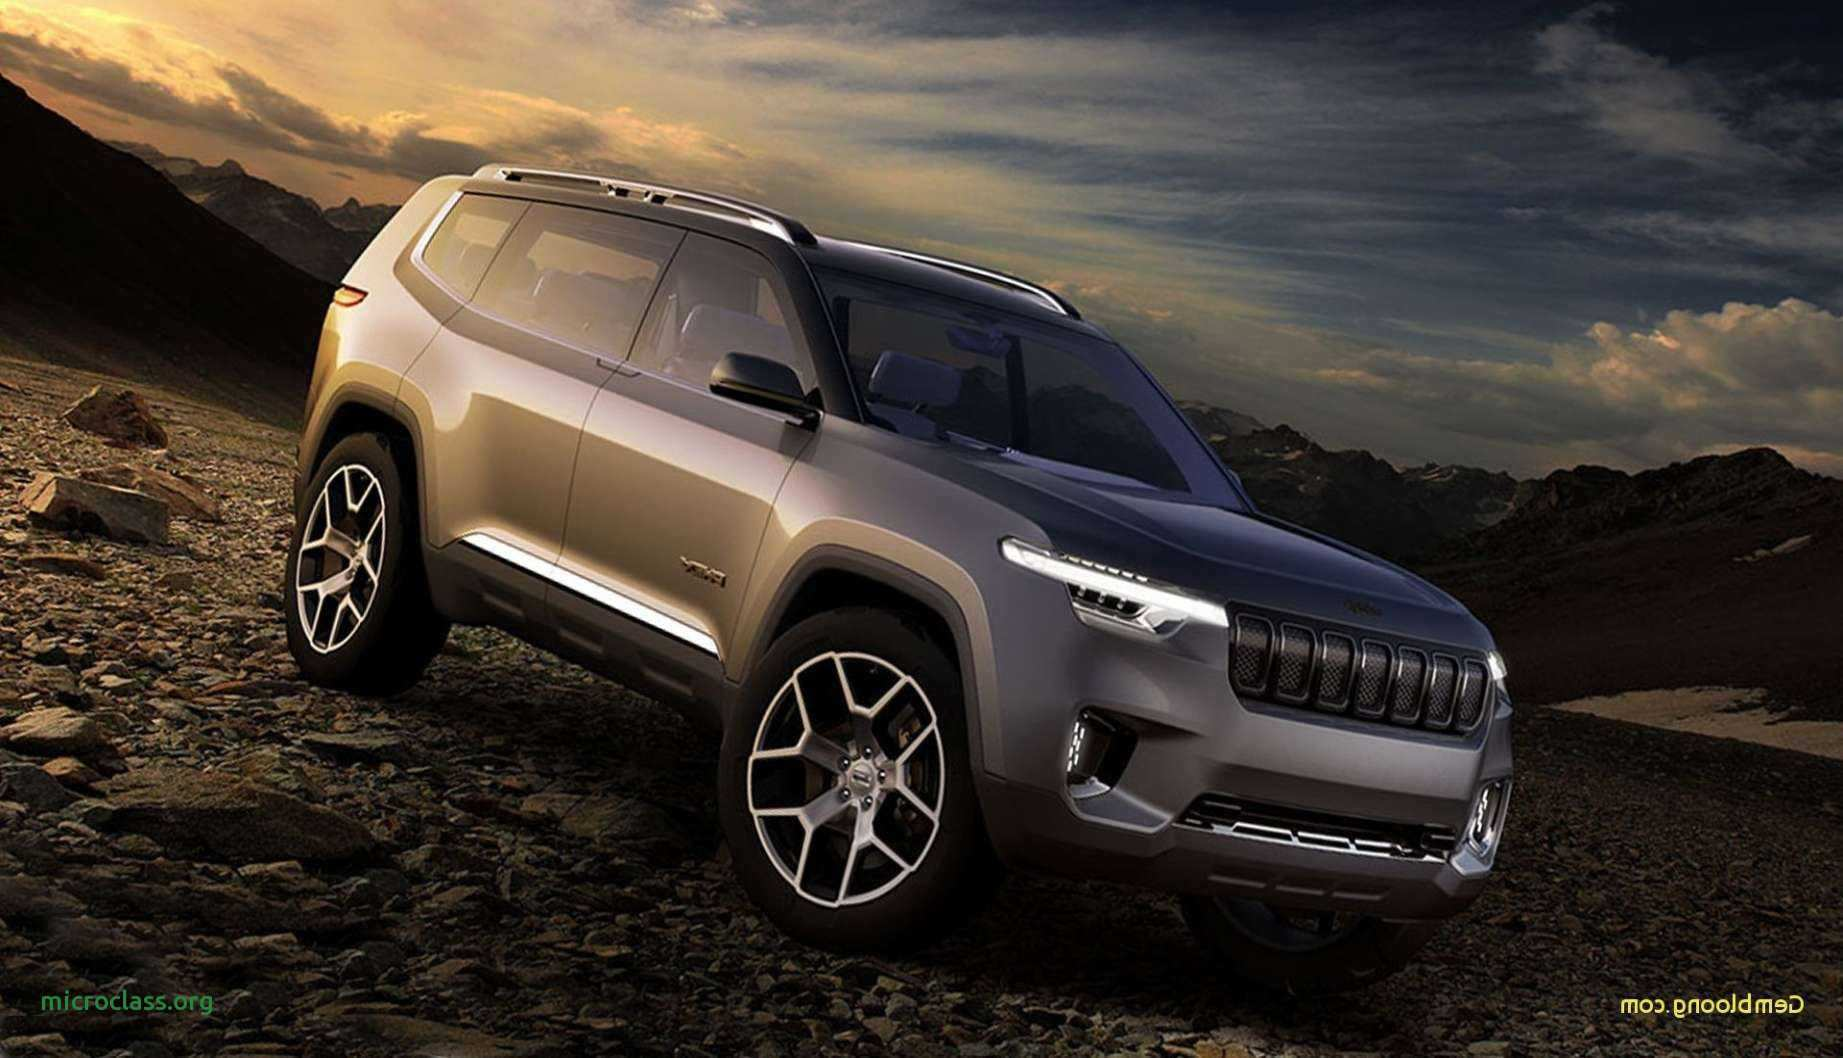 68 Concept of Jeep Jeepster 2020 Pictures by Jeep Jeepster 2020